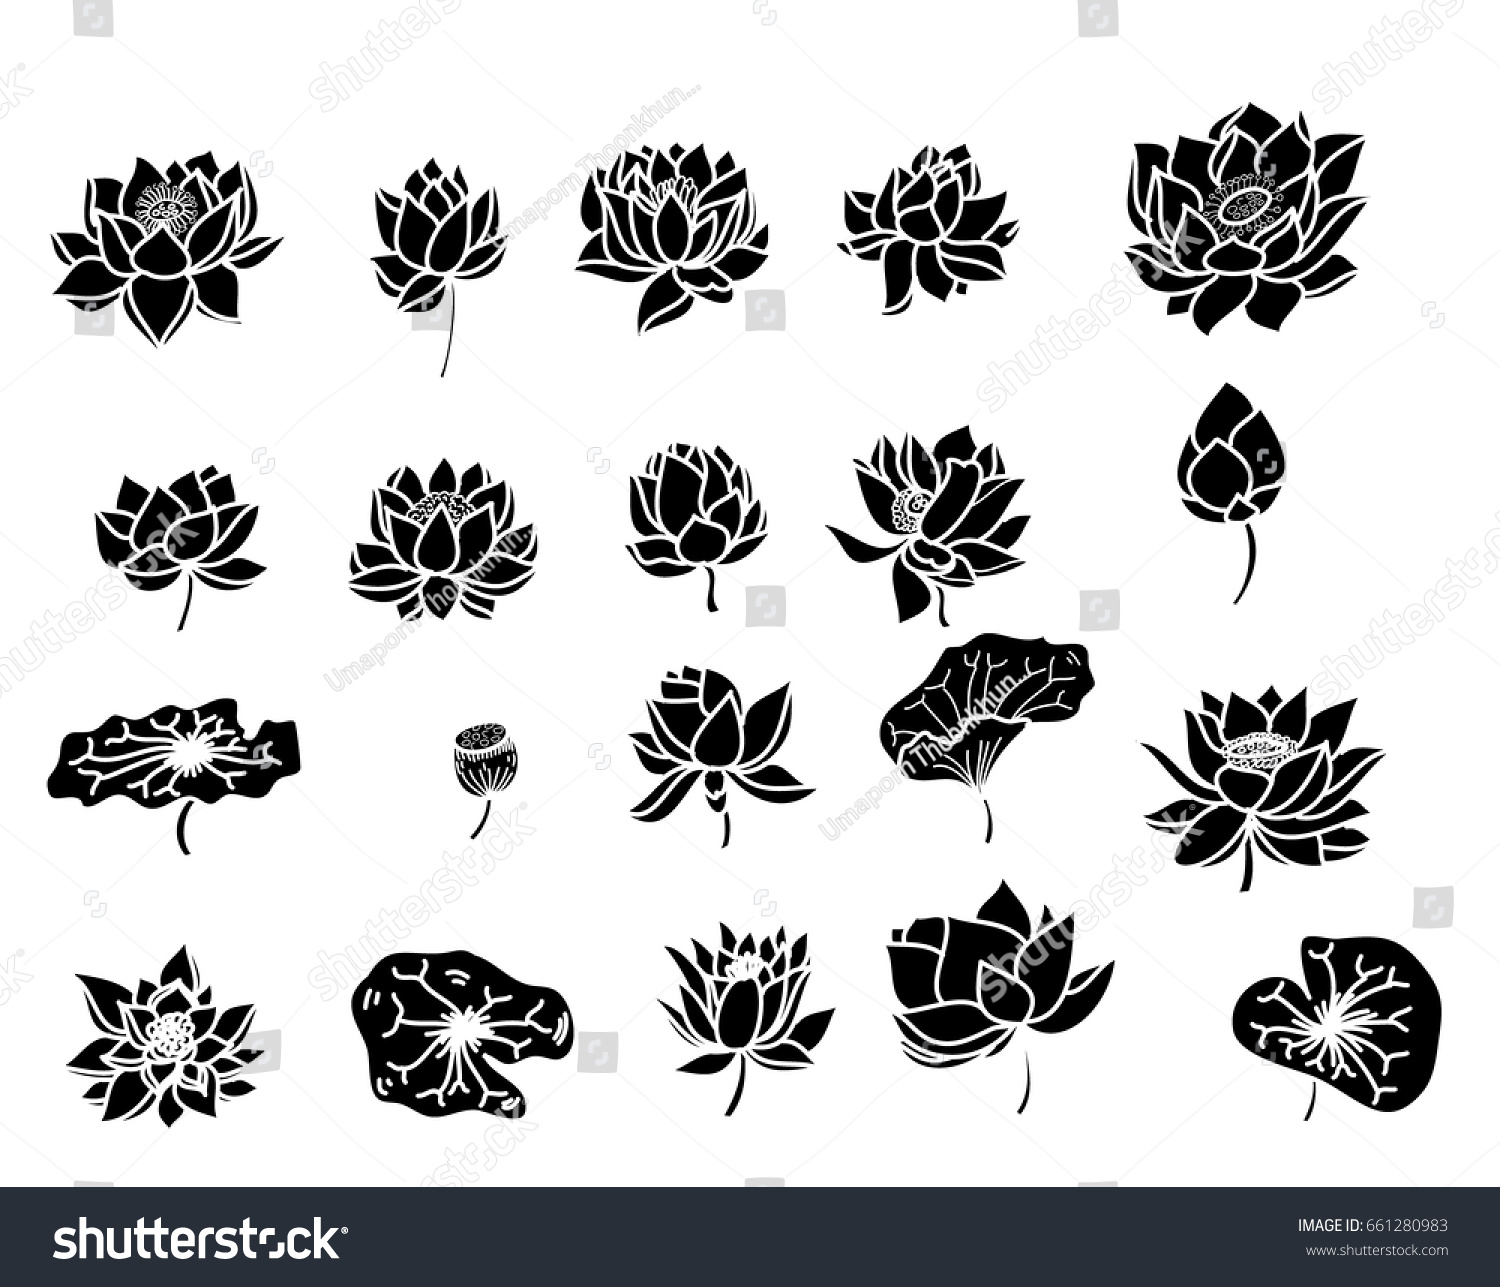 Hand Drawn Silhouette Lotus Flower Isolate Stock Vector Royalty